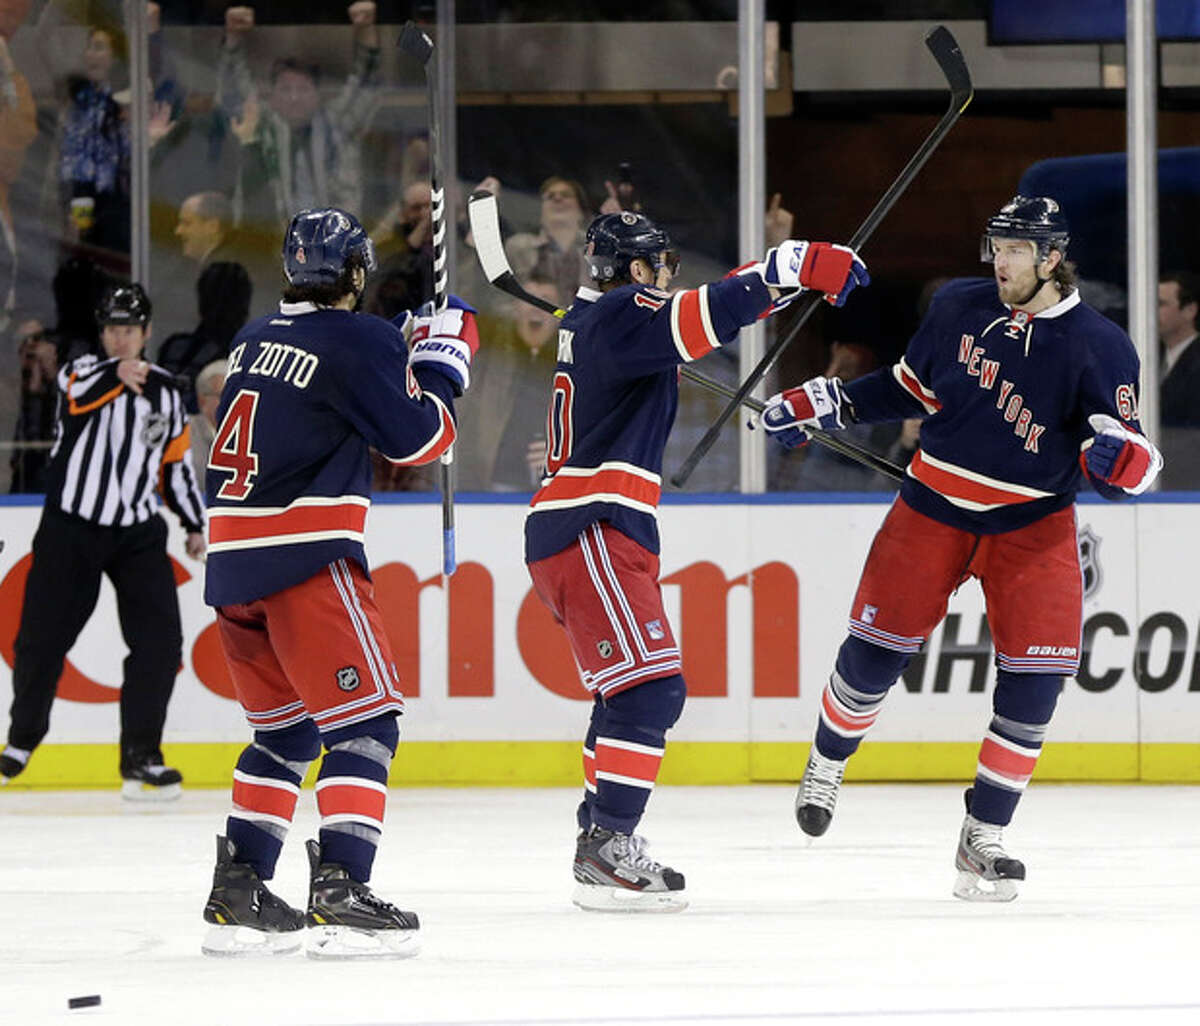 New York Rangers' Rick Nash, right, celebrates his goal with teammates during the third period of the NHL hockey game against the Buffalo Sabres in New York, Sunday, March 3, 2013. The Rangers beat the Sabres in a shoot-out, 3-2. (AP Photo/Seth Wenig)